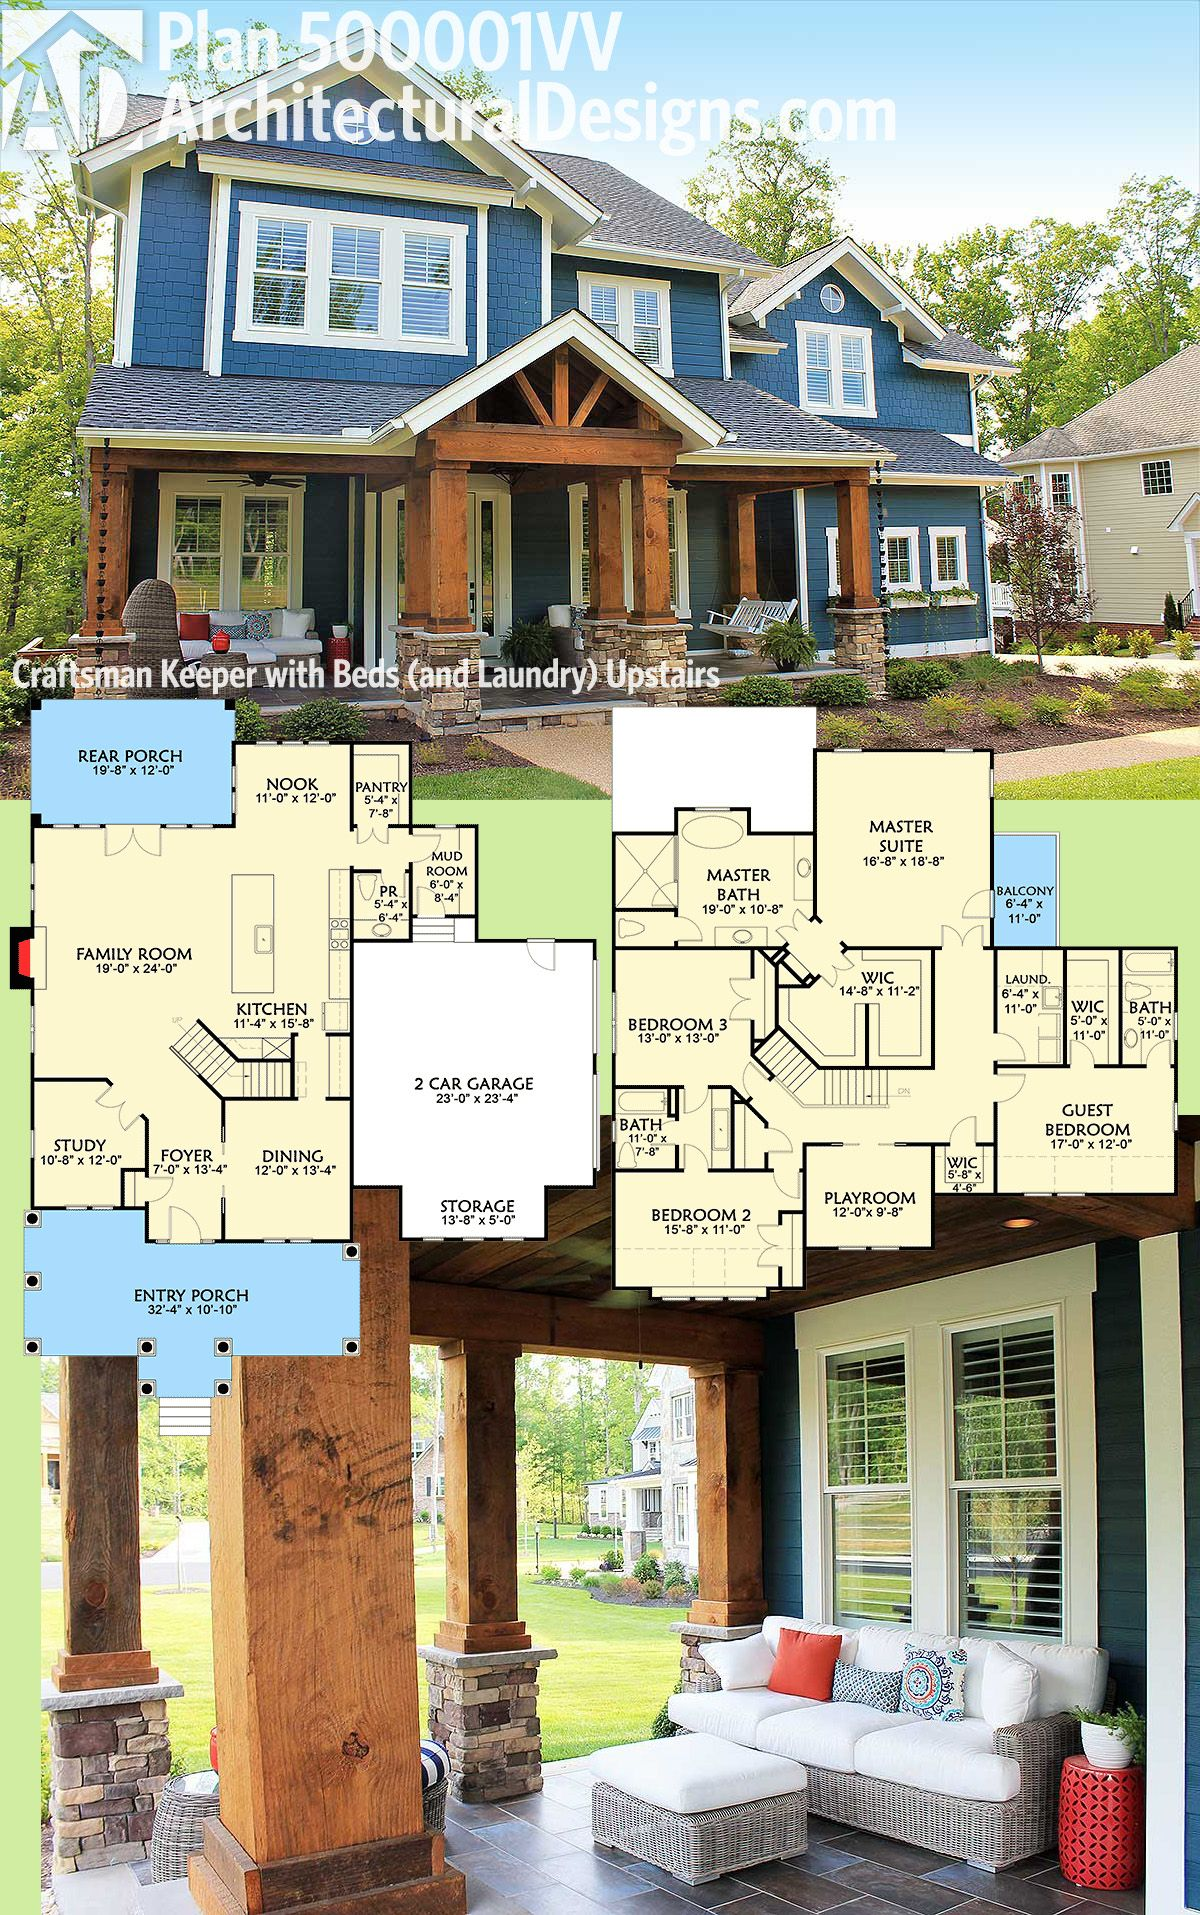 Plan 500001vv craftsman keeper with beds and laundry for 3 family house plans